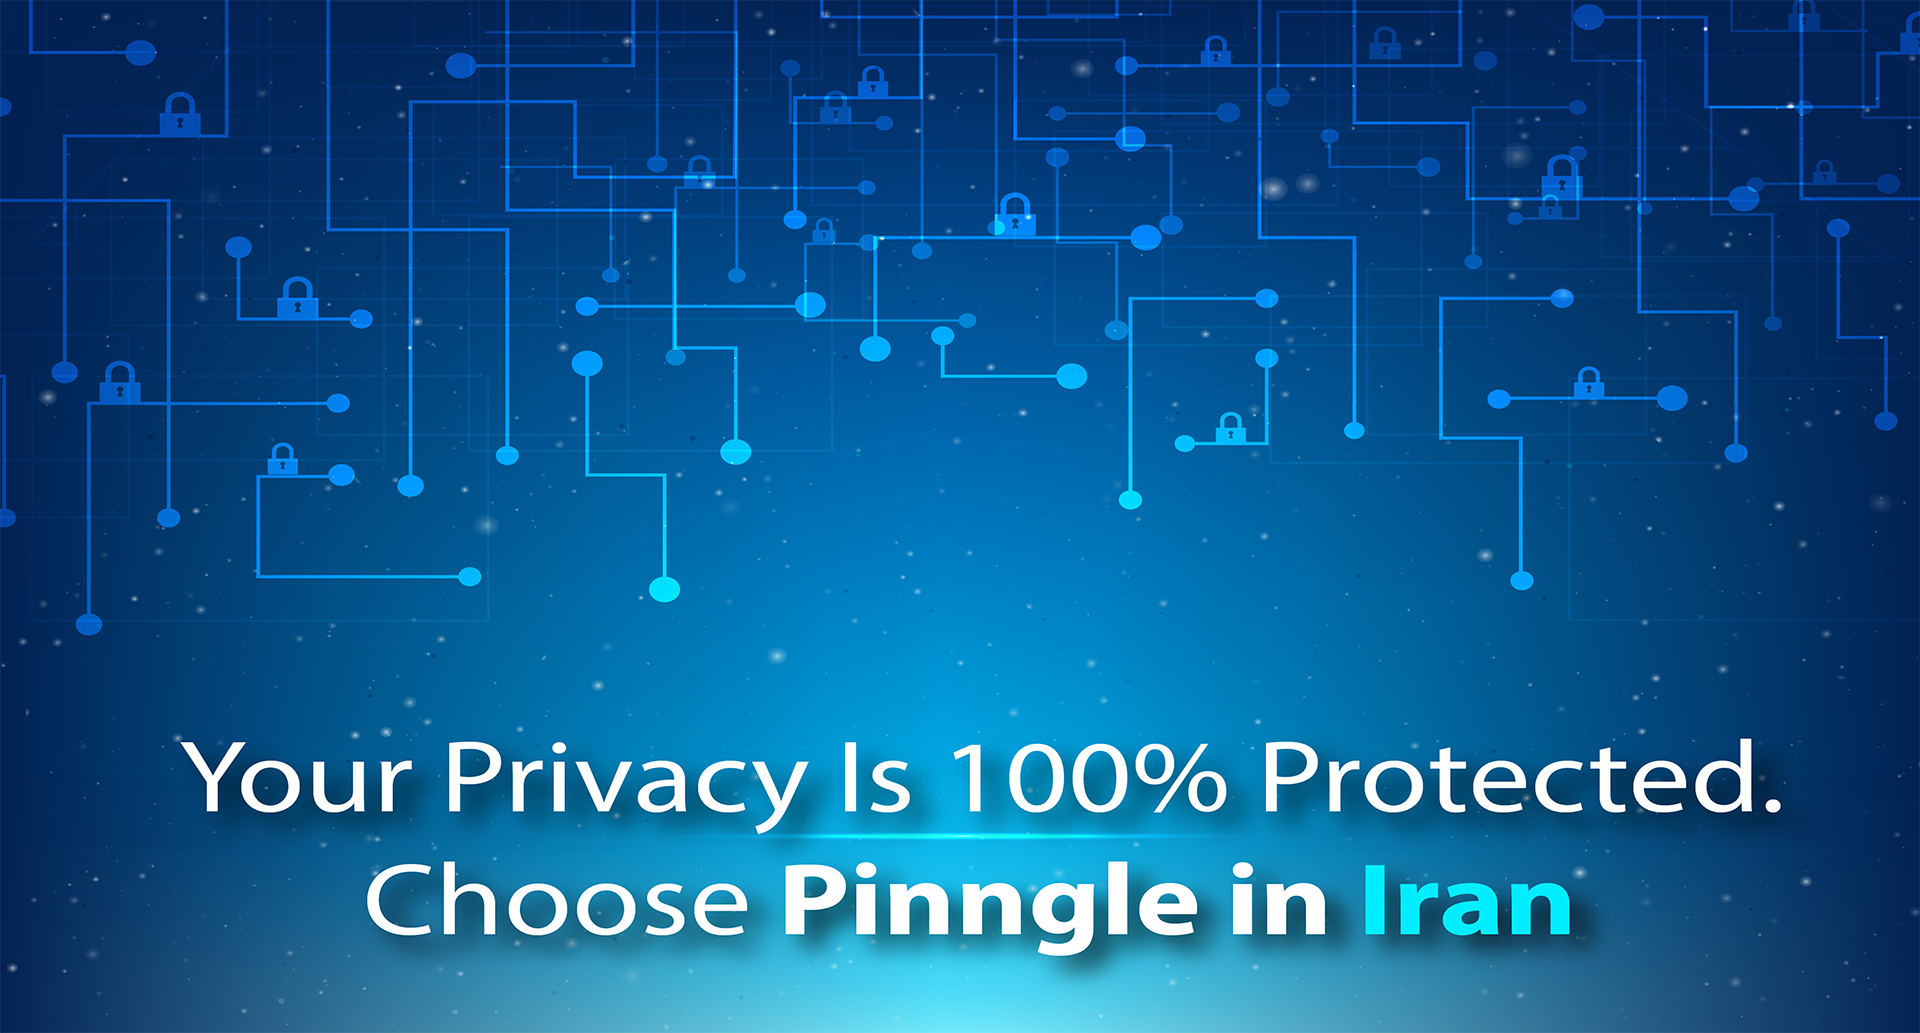 Choose Pinngle for Privacy Protection in Iran